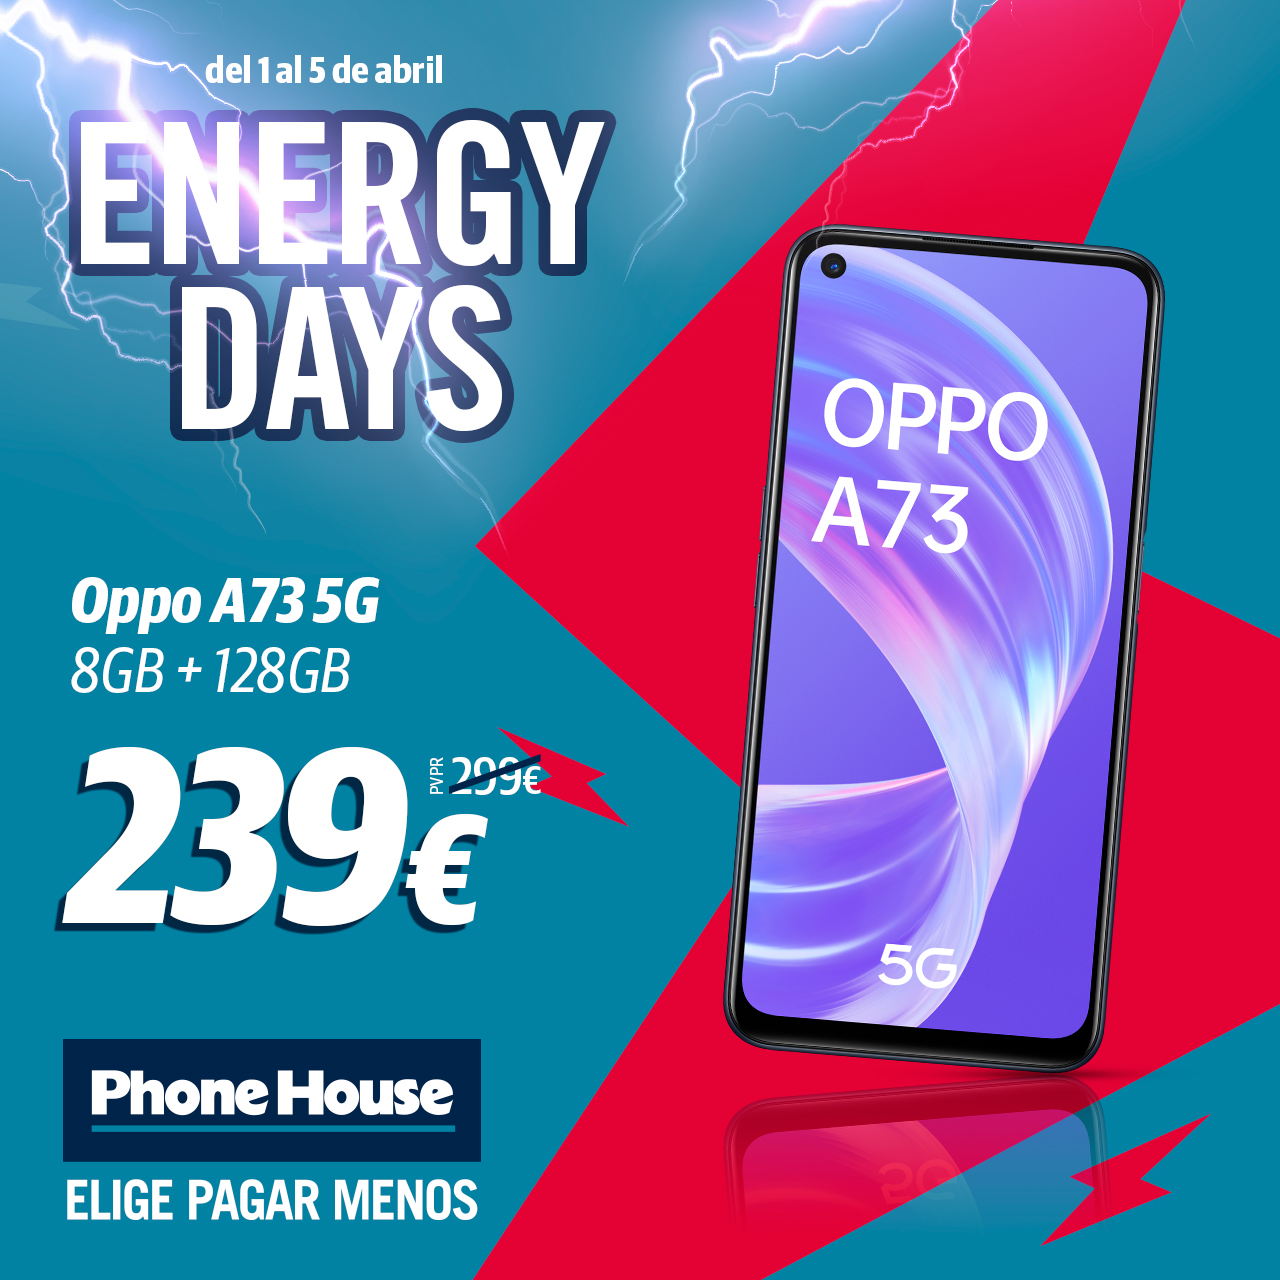 1000x1000 Rrss Energy Days 01a05 04 Prioridad2